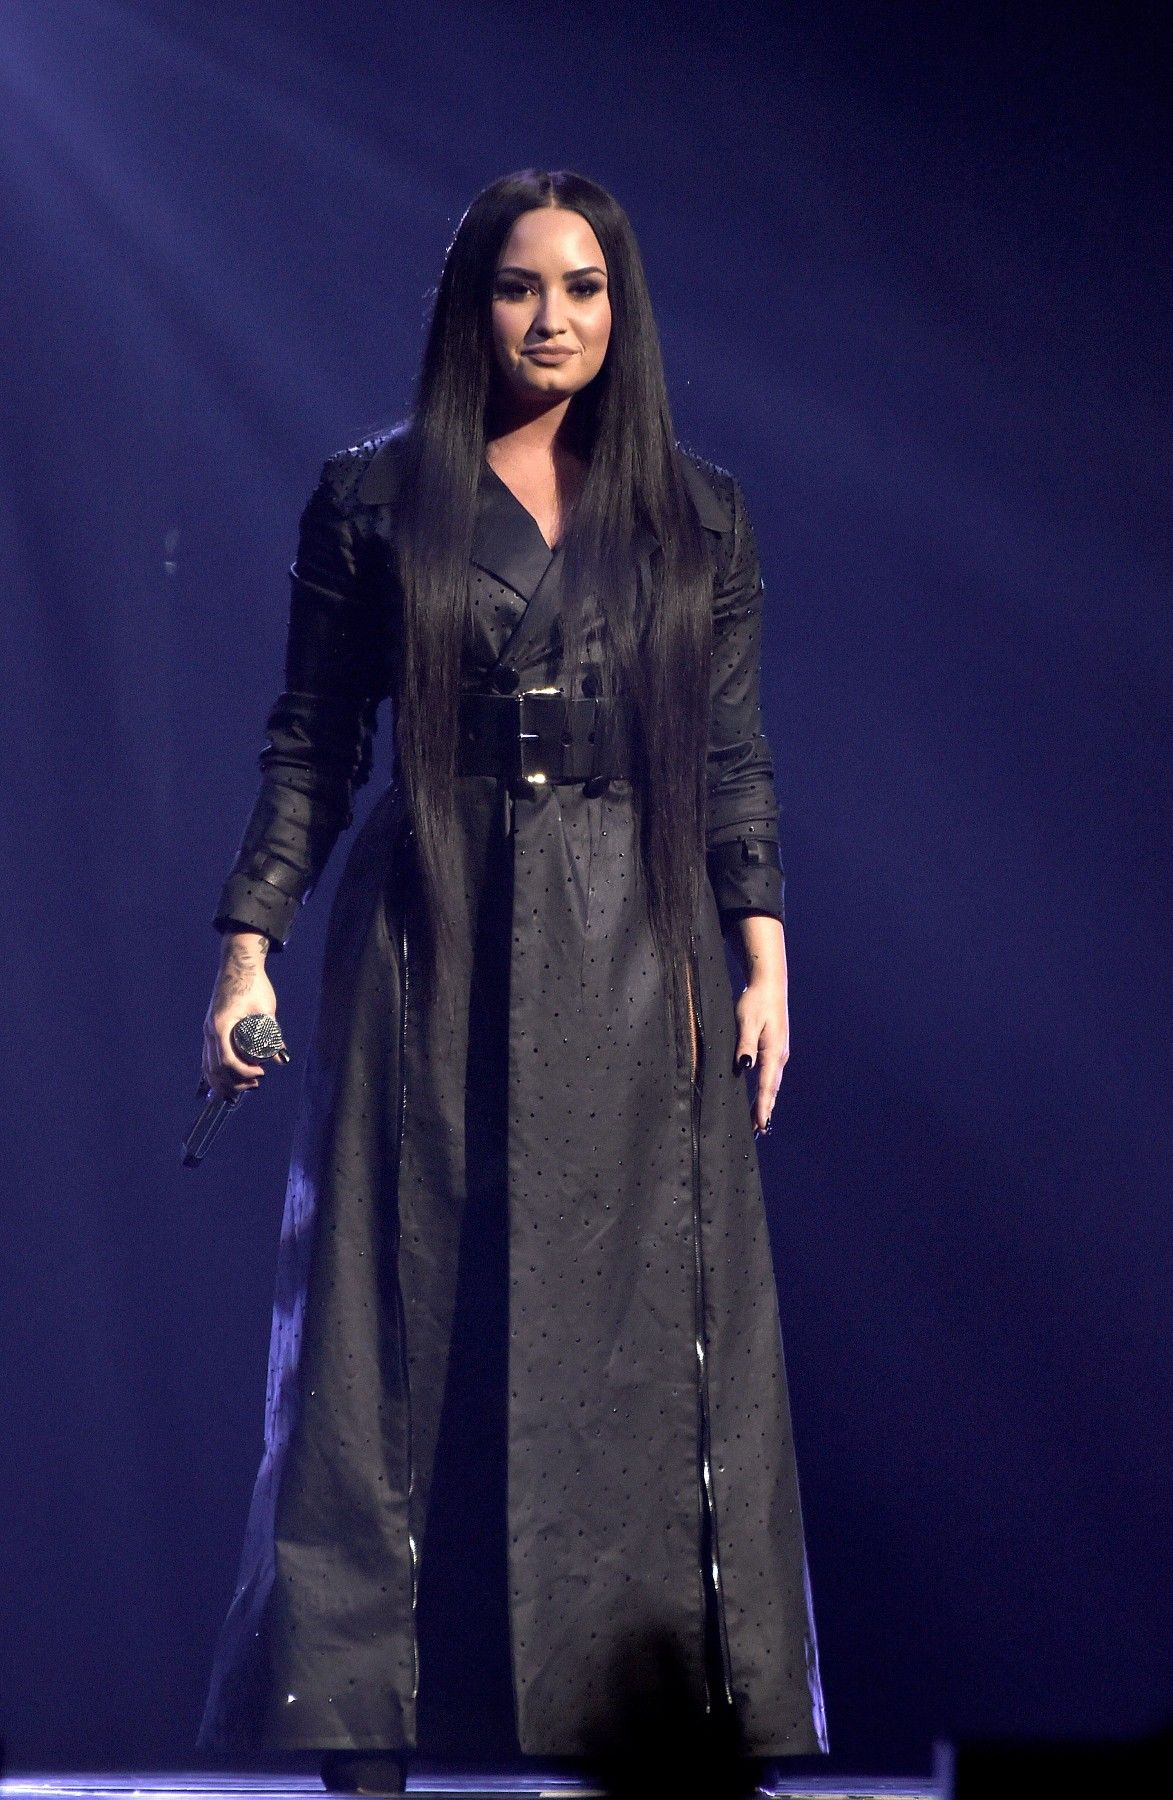 Demi Lovato Tell Me You Love Me World Tour Demi Lovato Cantores Mulheres